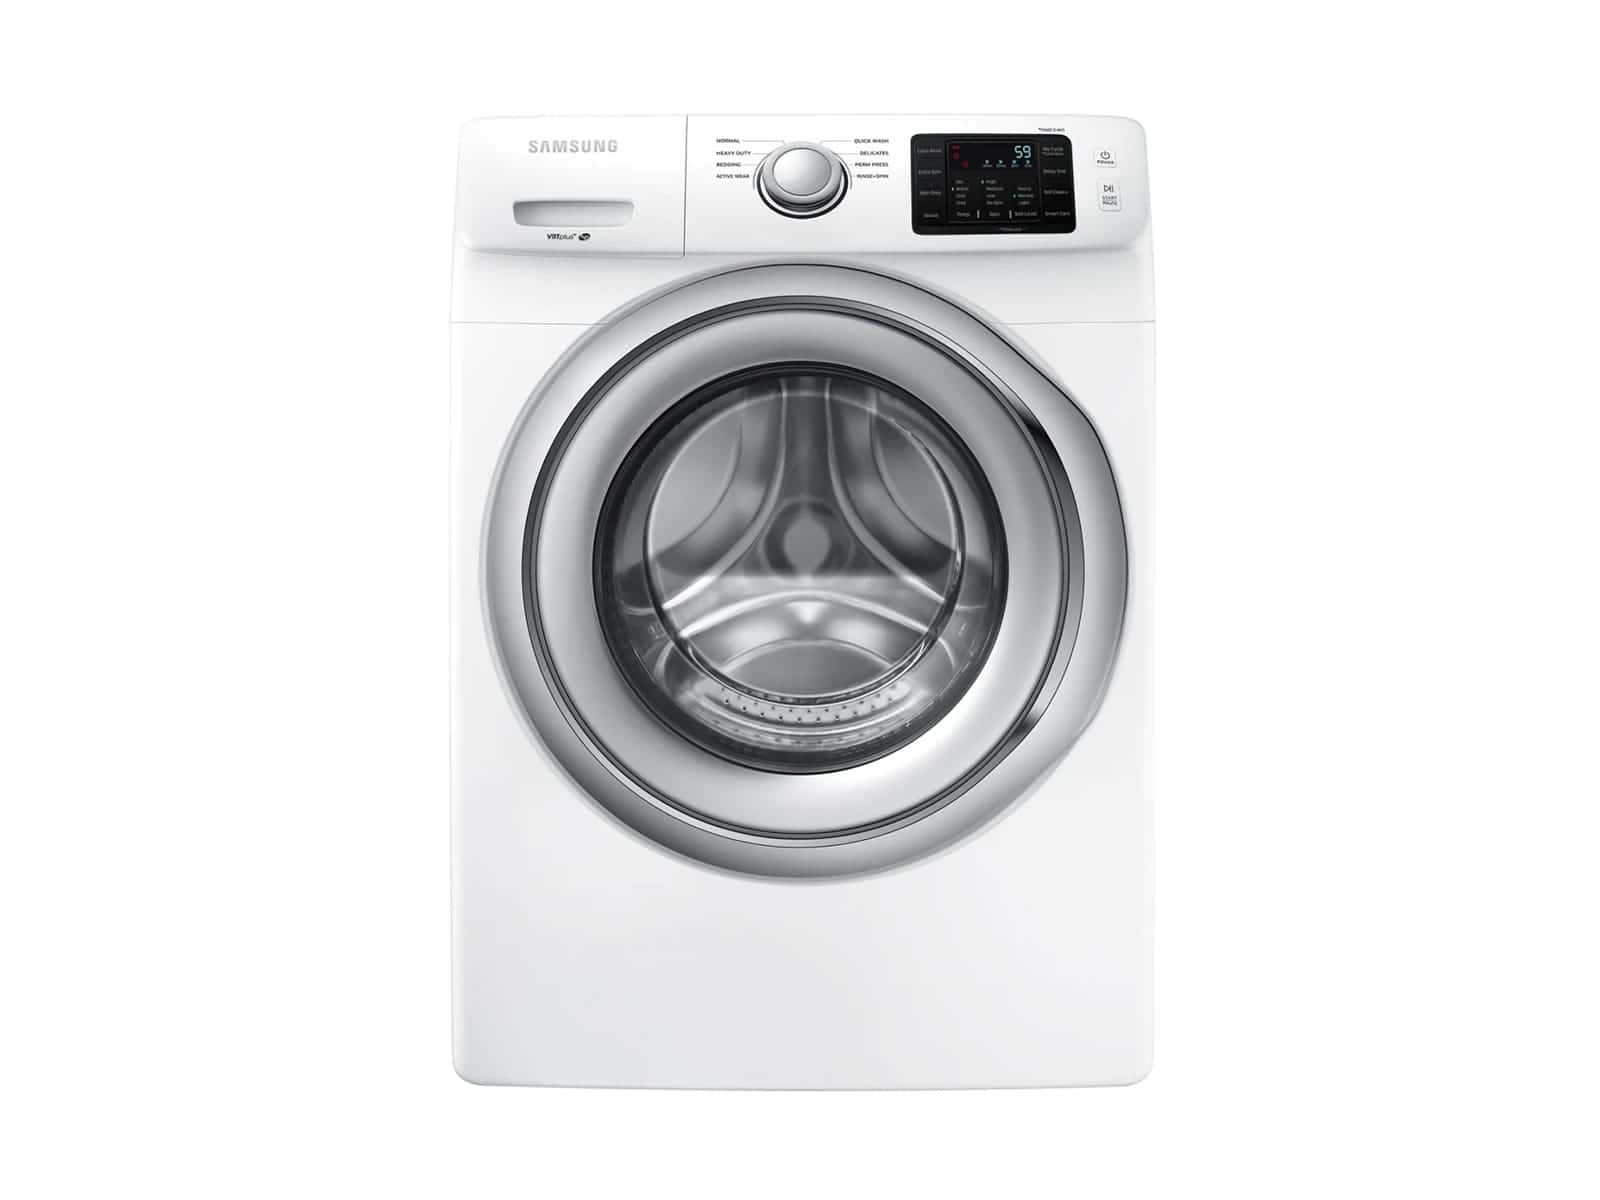 Washer & Dryer Sale: Samsung WF5300 4.5 cu. cf. Front Load Washer with VRT Plus for $269.70 & More + FS